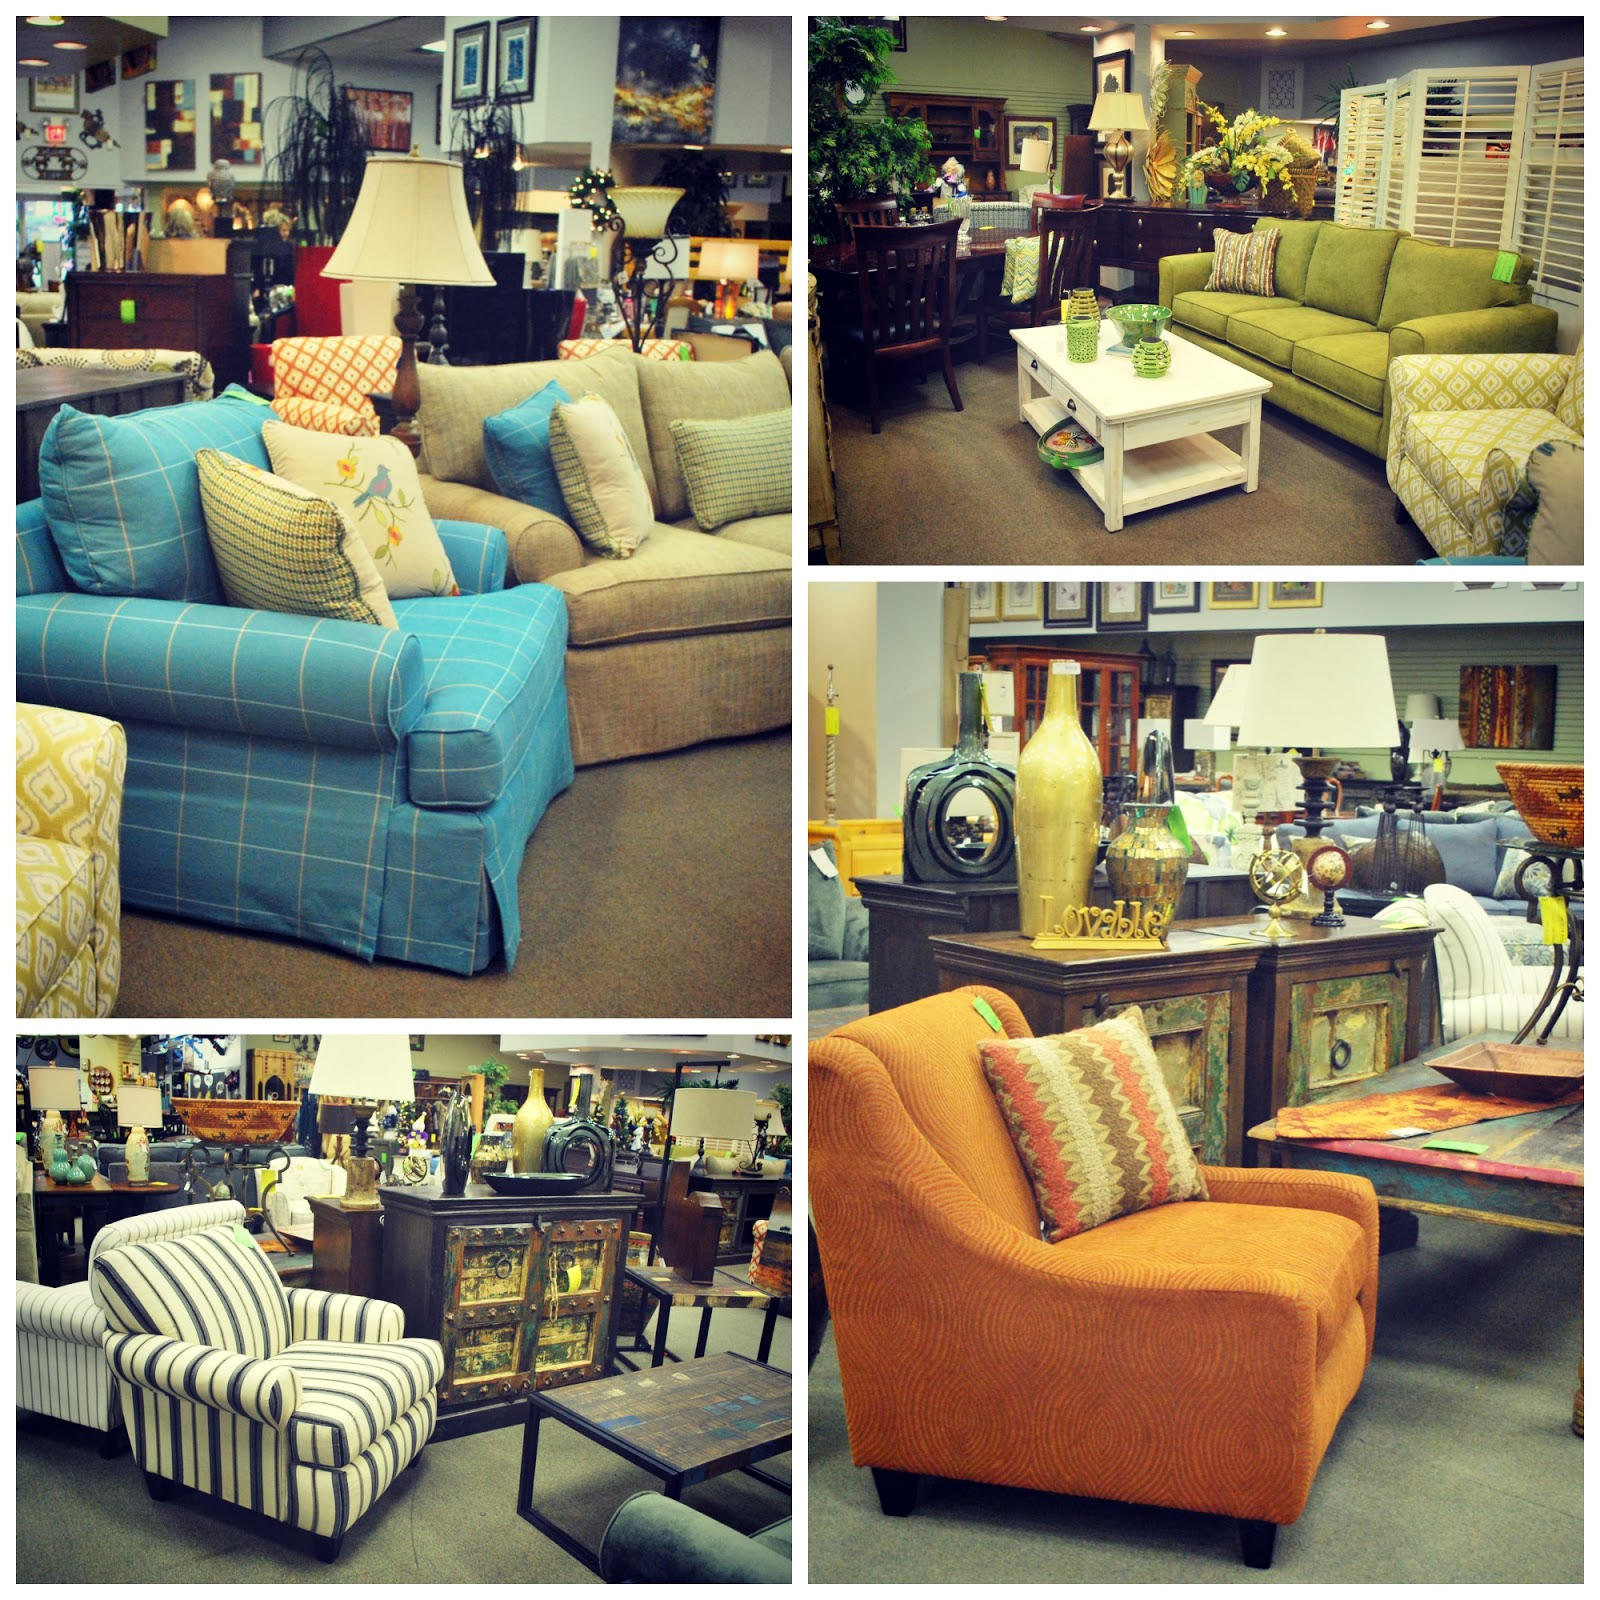 Furniture Warehouse Birmingham Tucci 39s Unique Furnishings And Accessories Great Prices